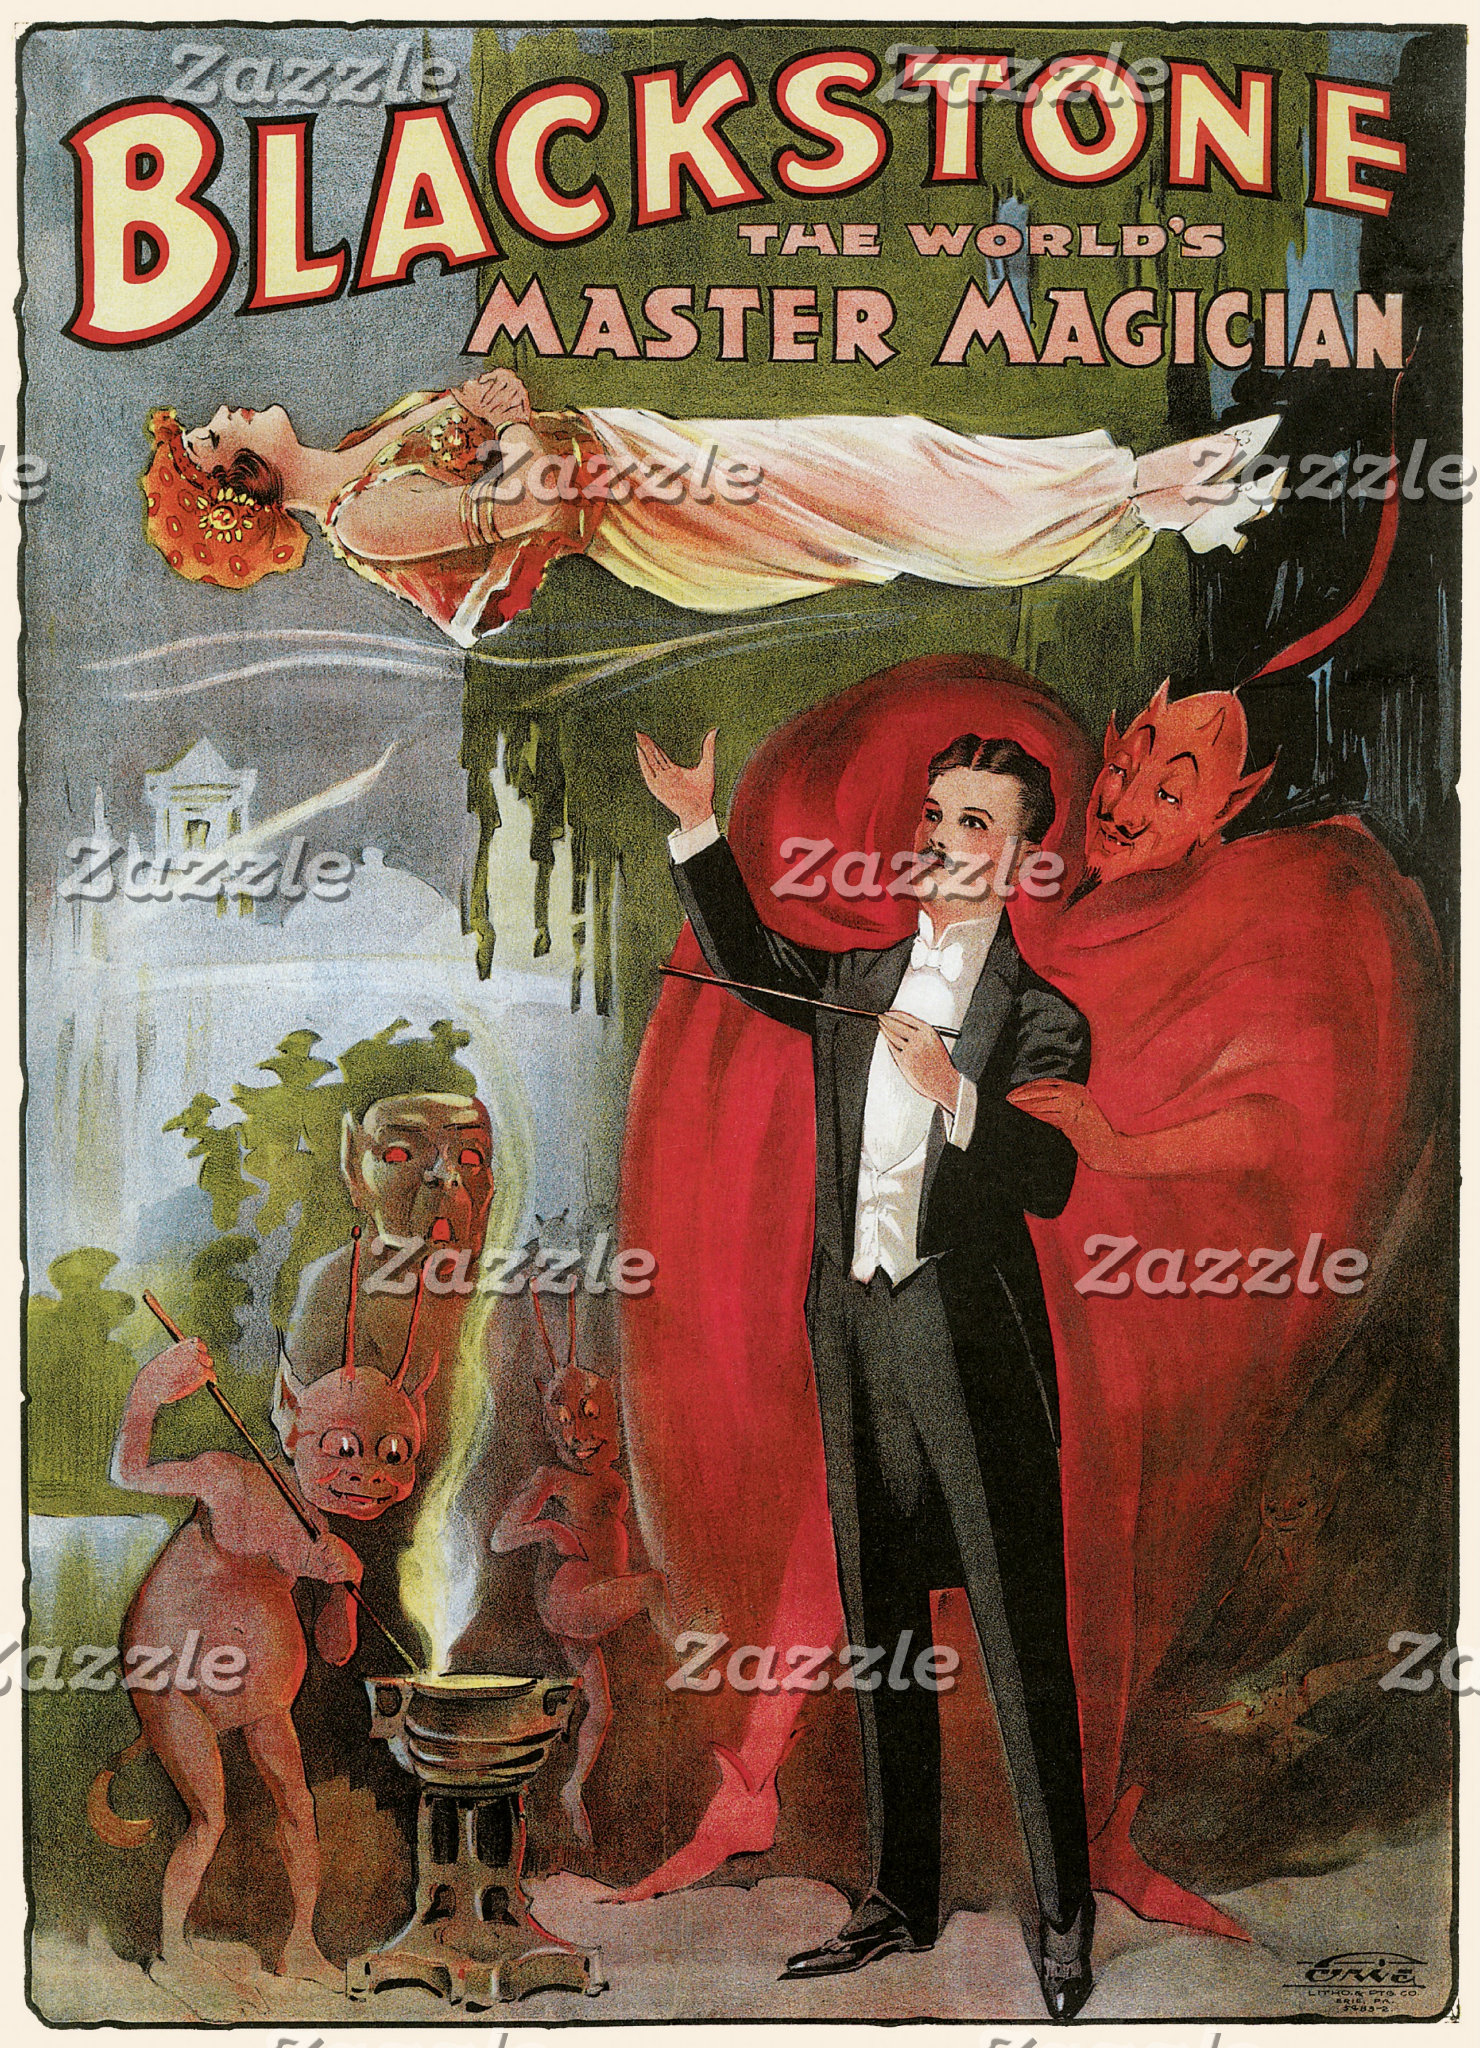 Vintage Magic Posters